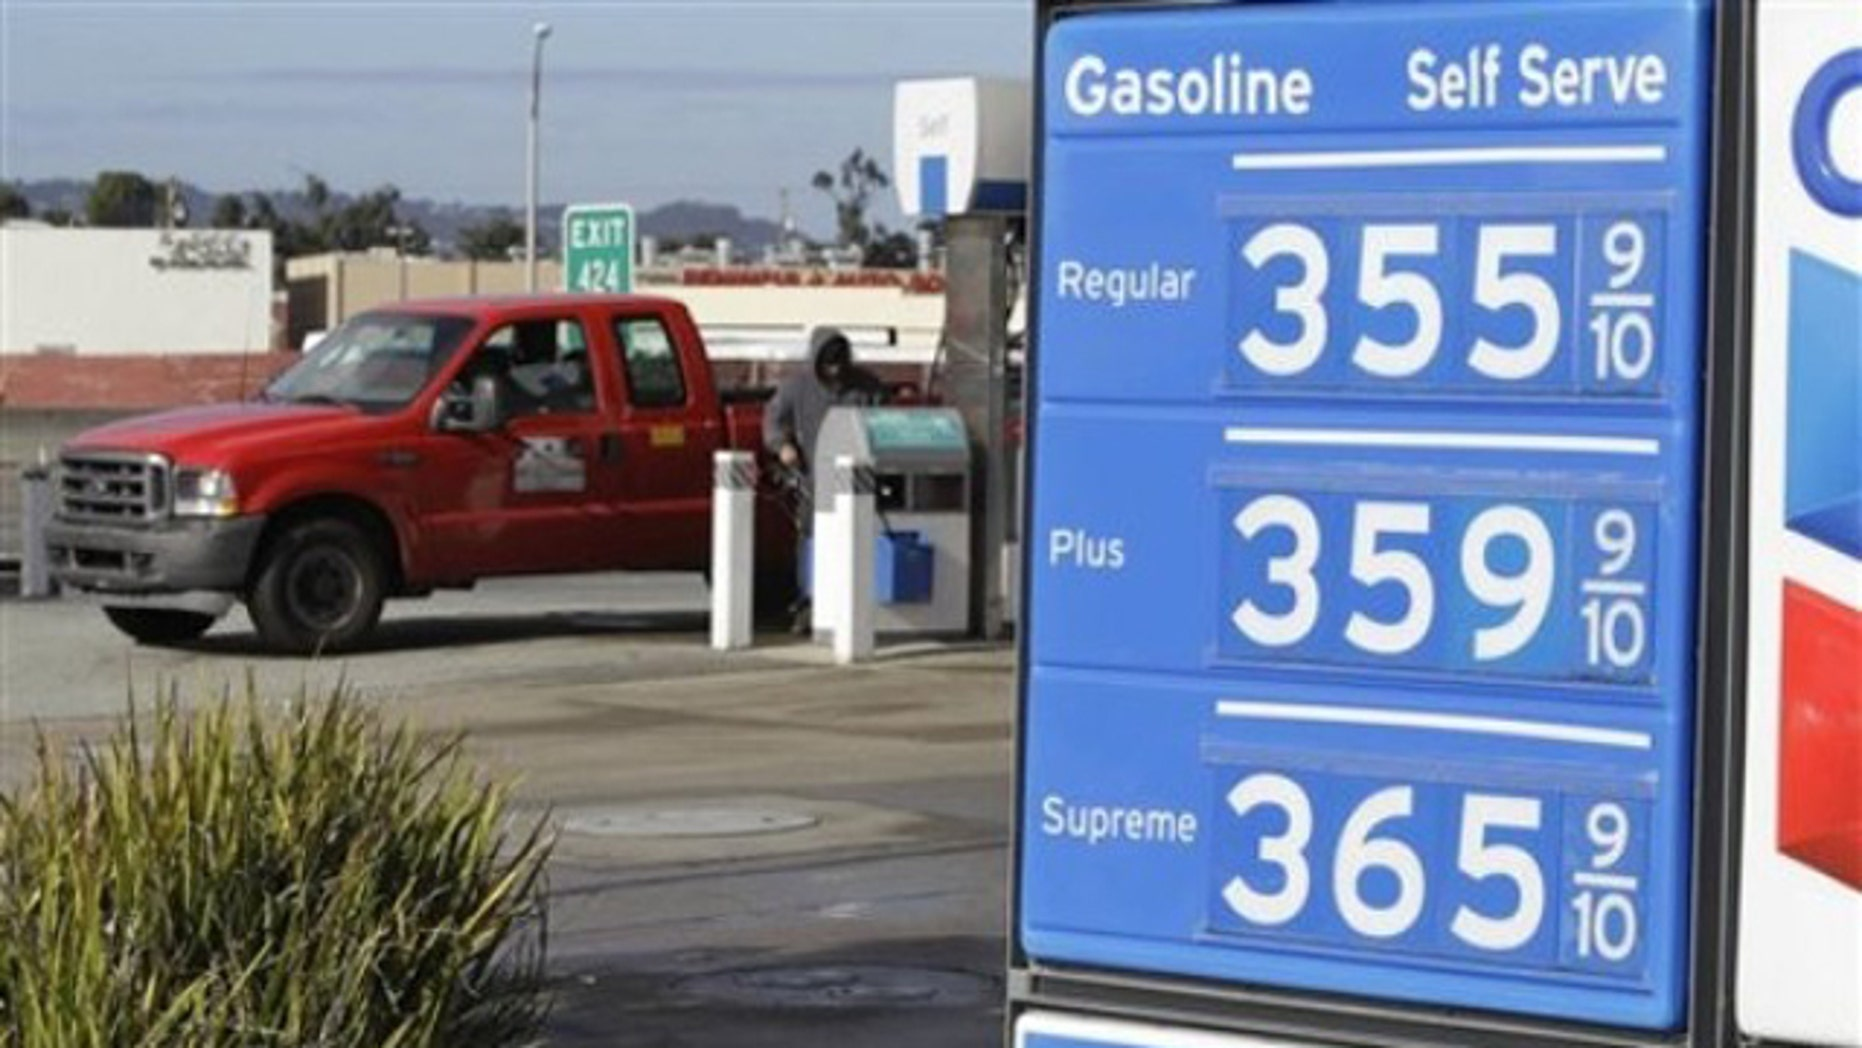 In this Nov. 23 photo, gas prices are displayed at a Chevron gas station in San Francisco.